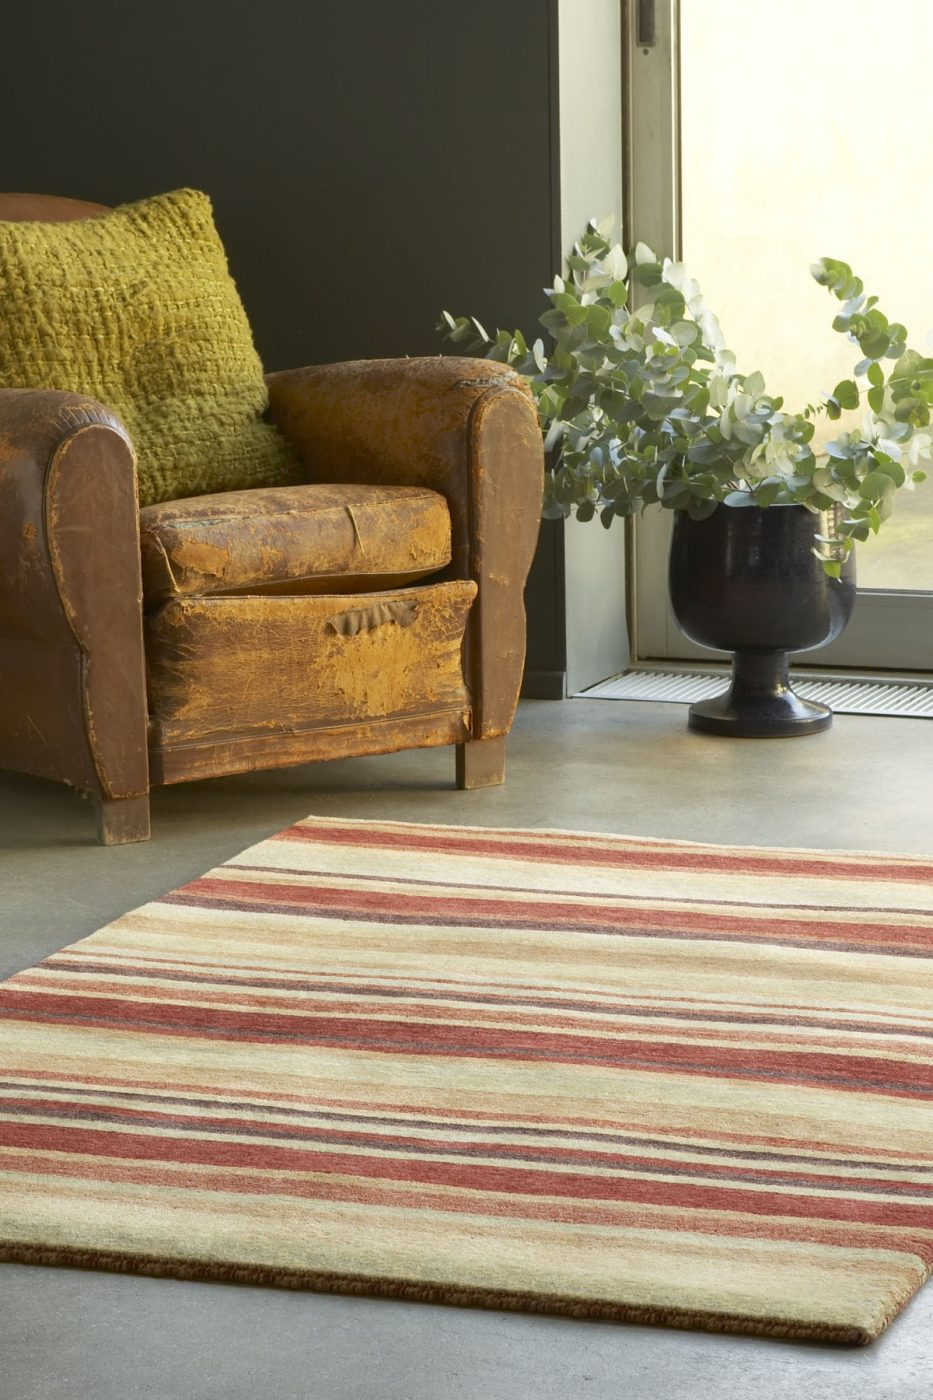 Regatta REG05 | Plantation Rug Company | Best at Flooring